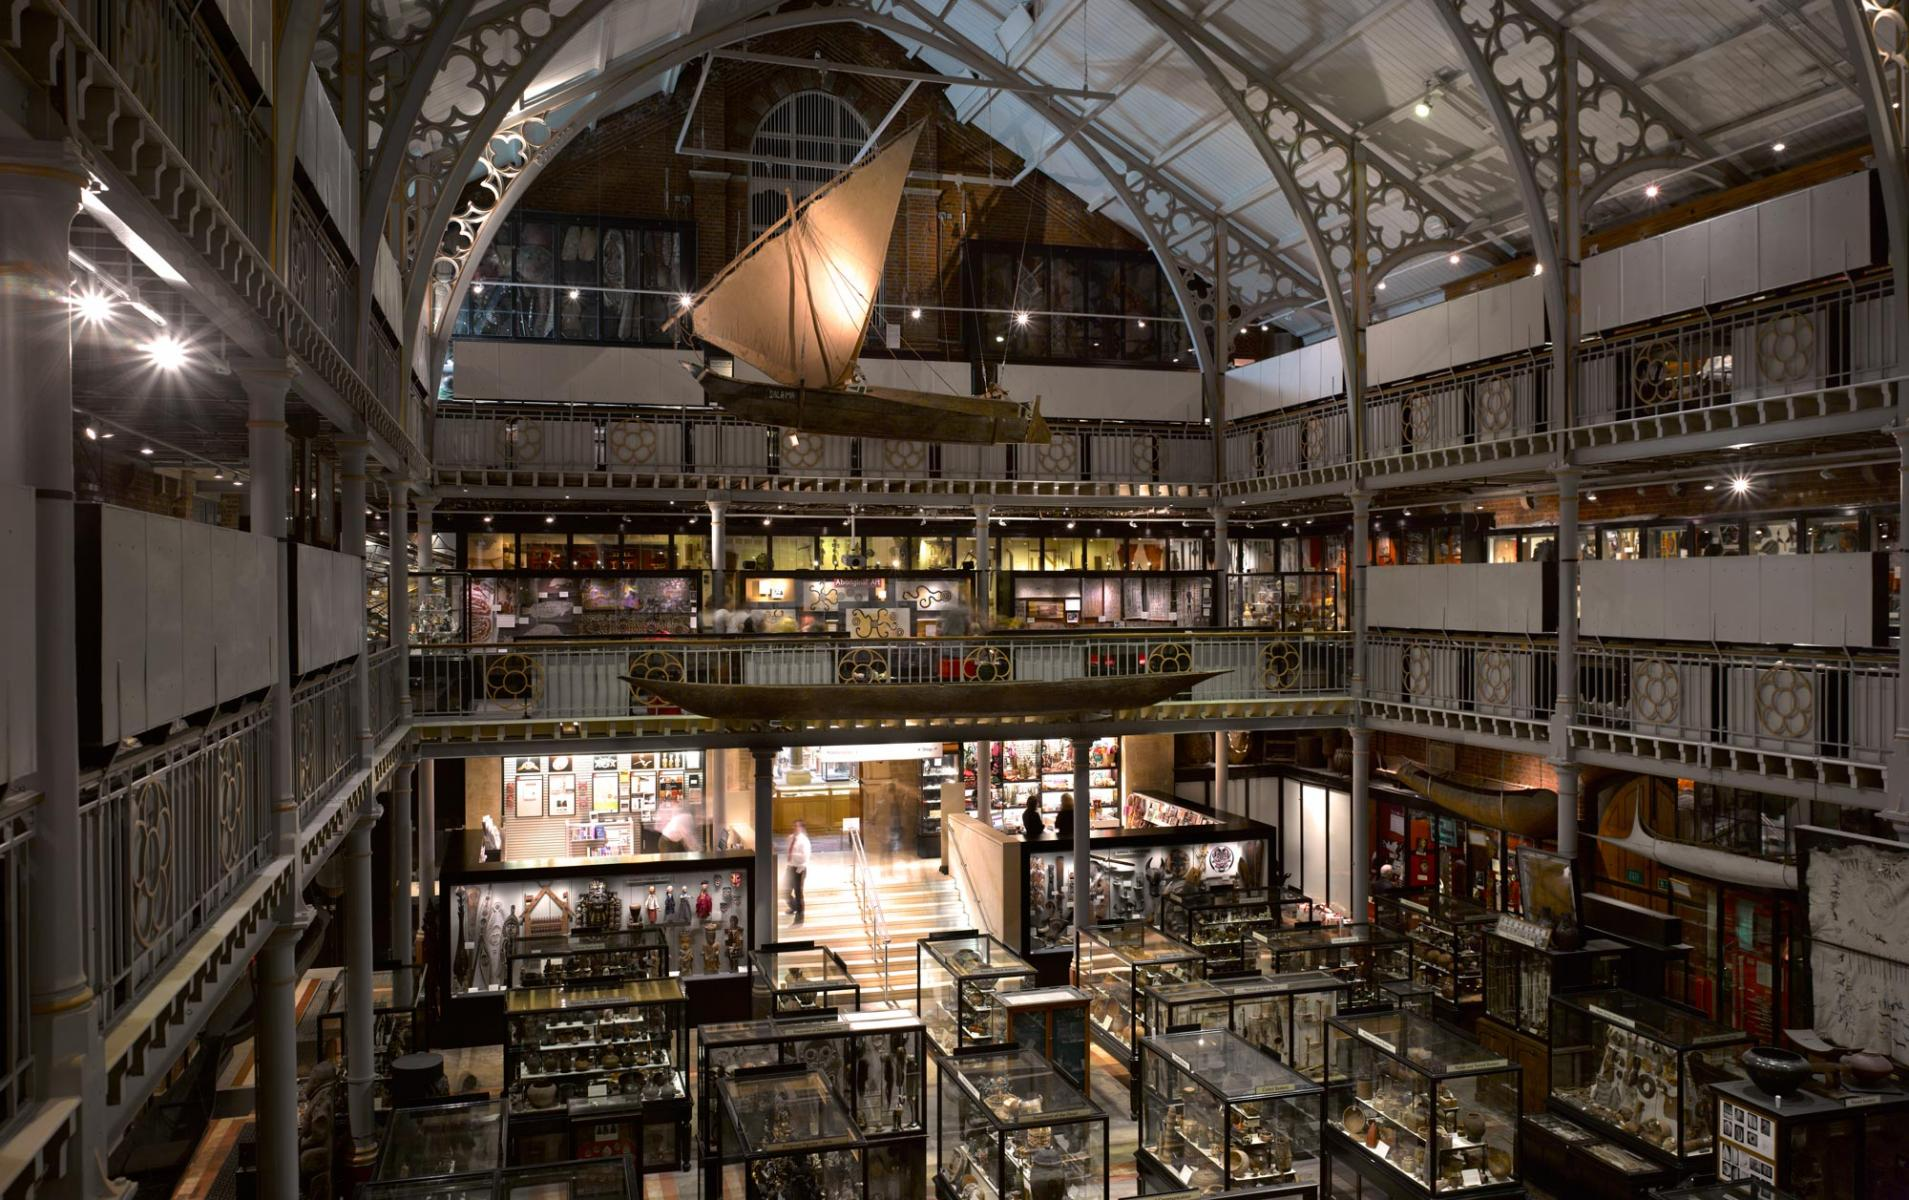 Pitt Rivers Museum Main Entrance and Refurbishment - Overall view